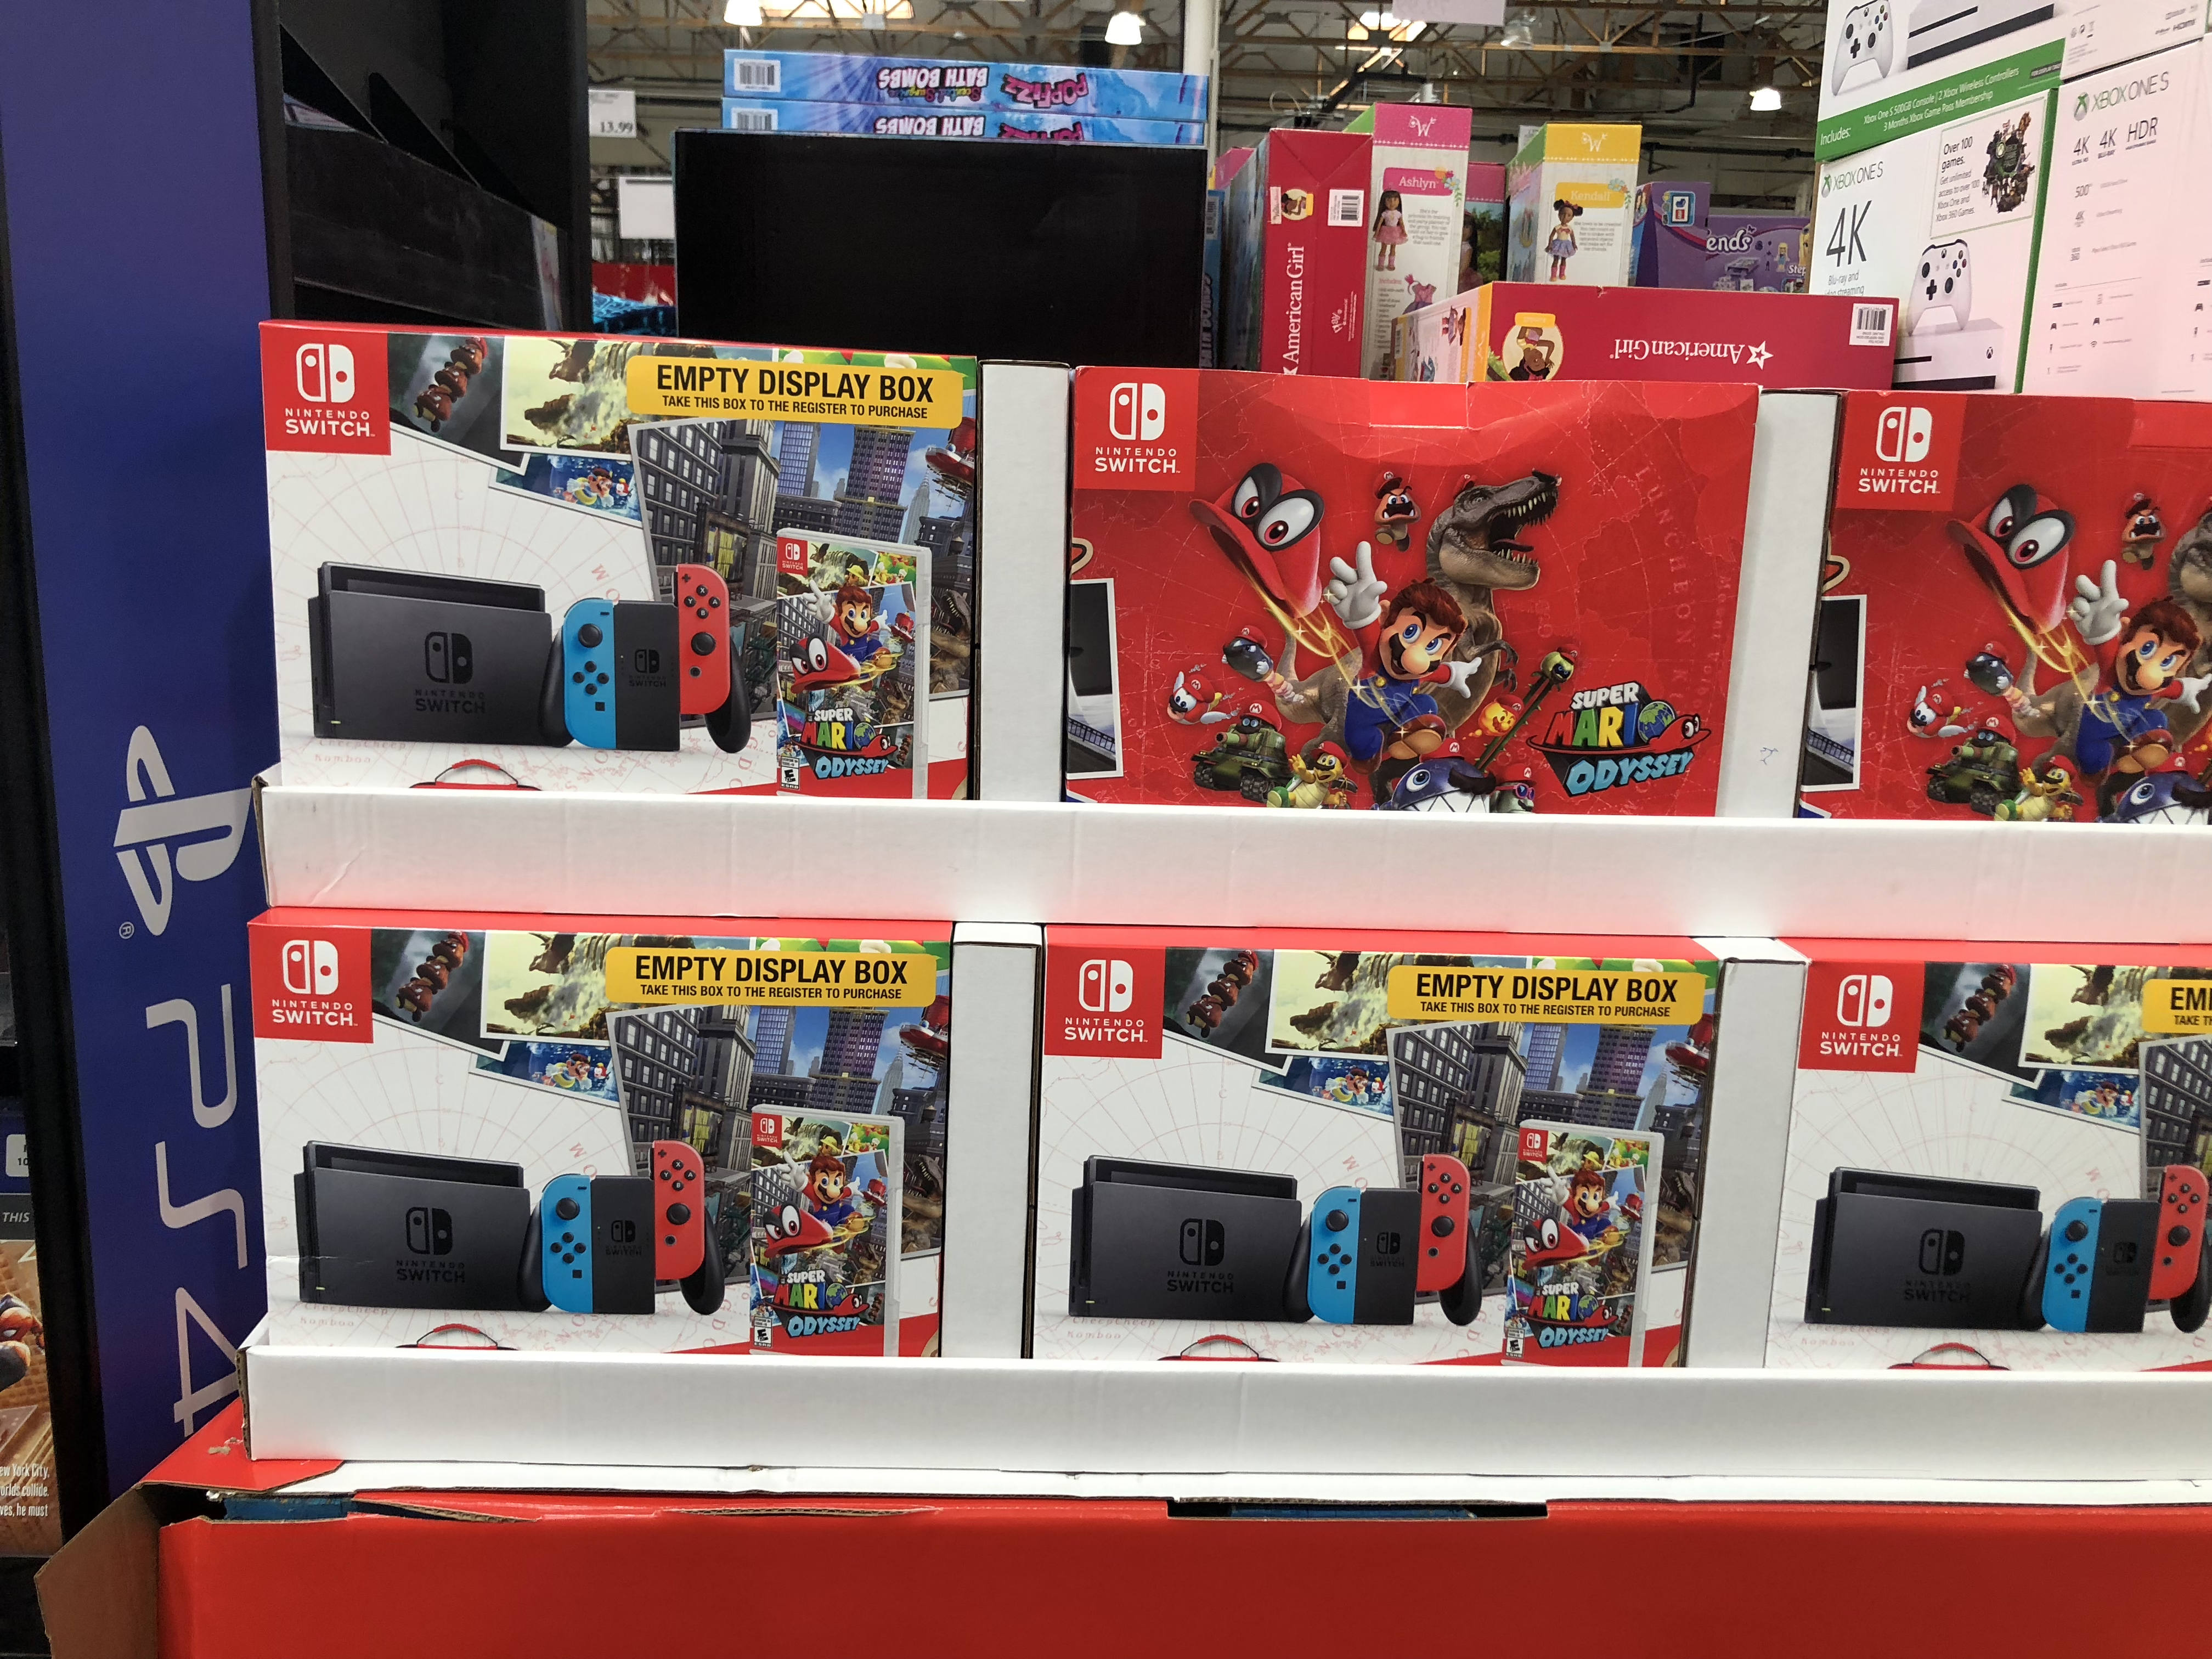 The best holiday toy deals for 2018 include the Nintendo Switch bundle at Costco